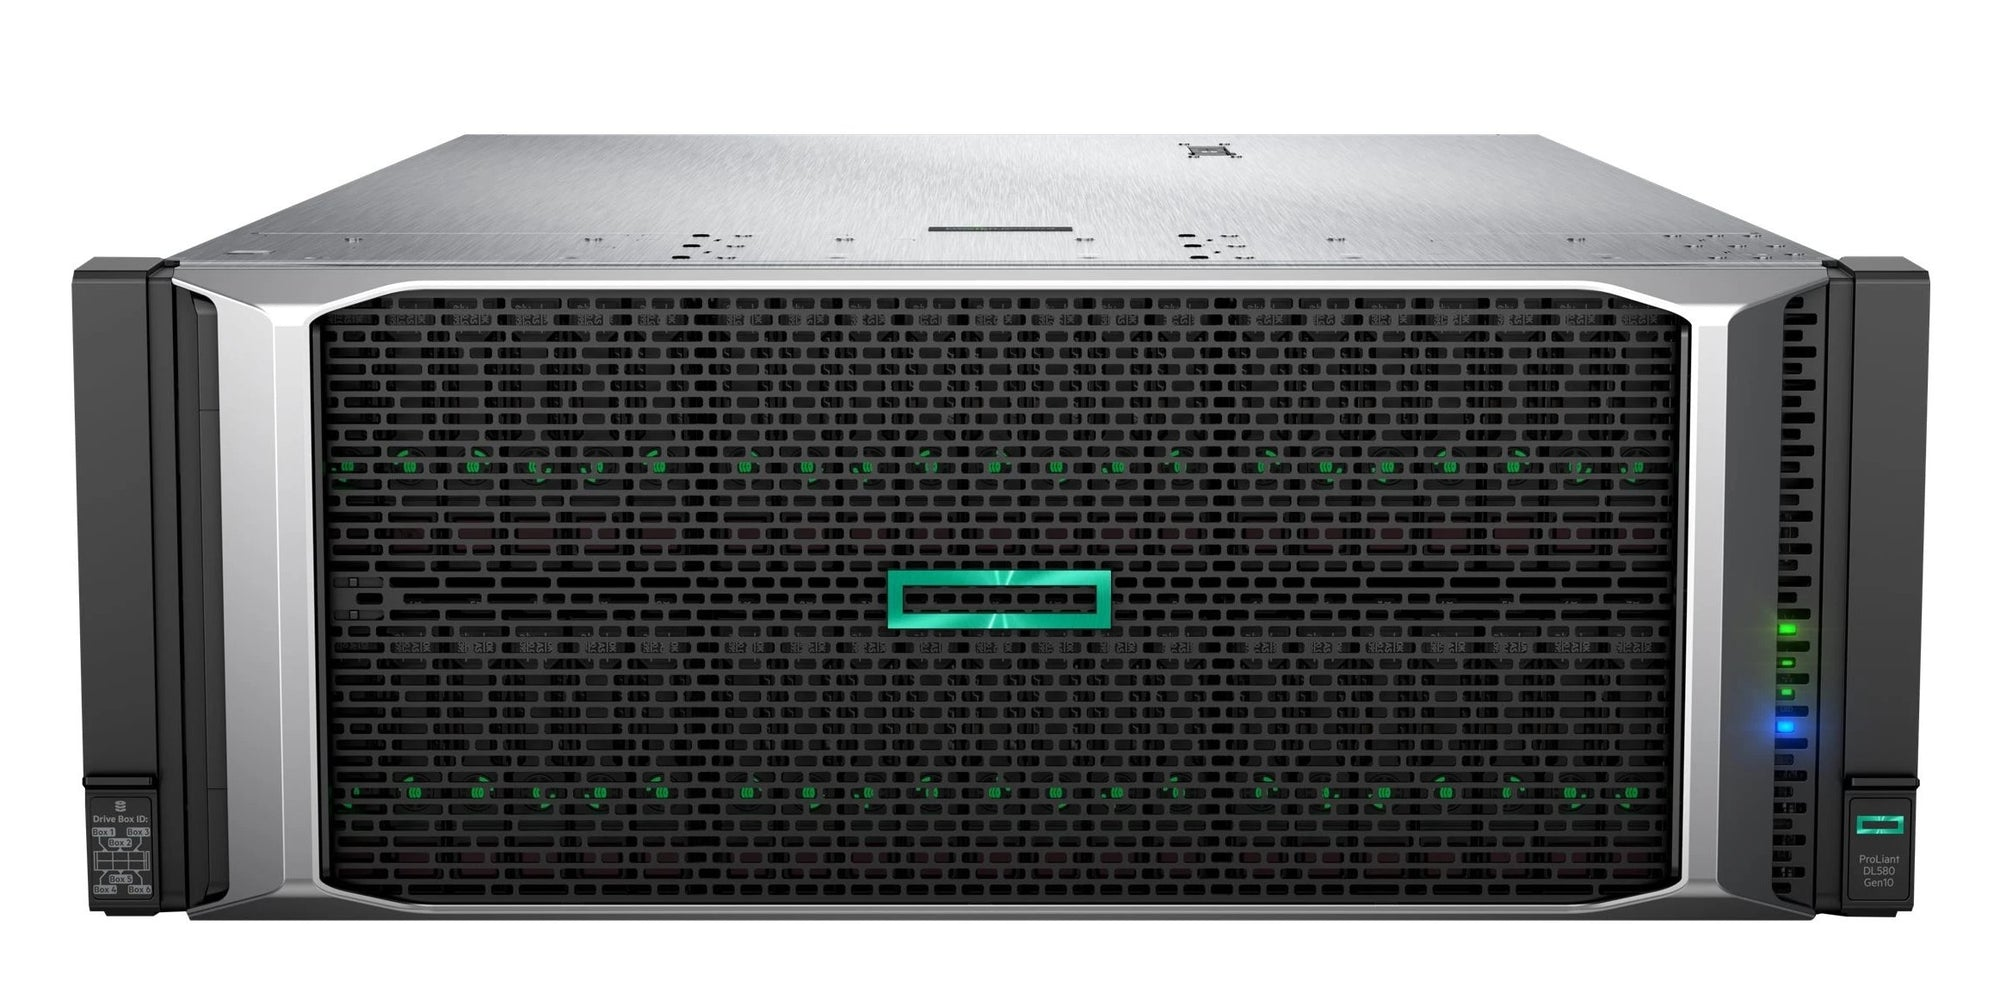 HPE ProLiant DL580 Gen10 CTO Server